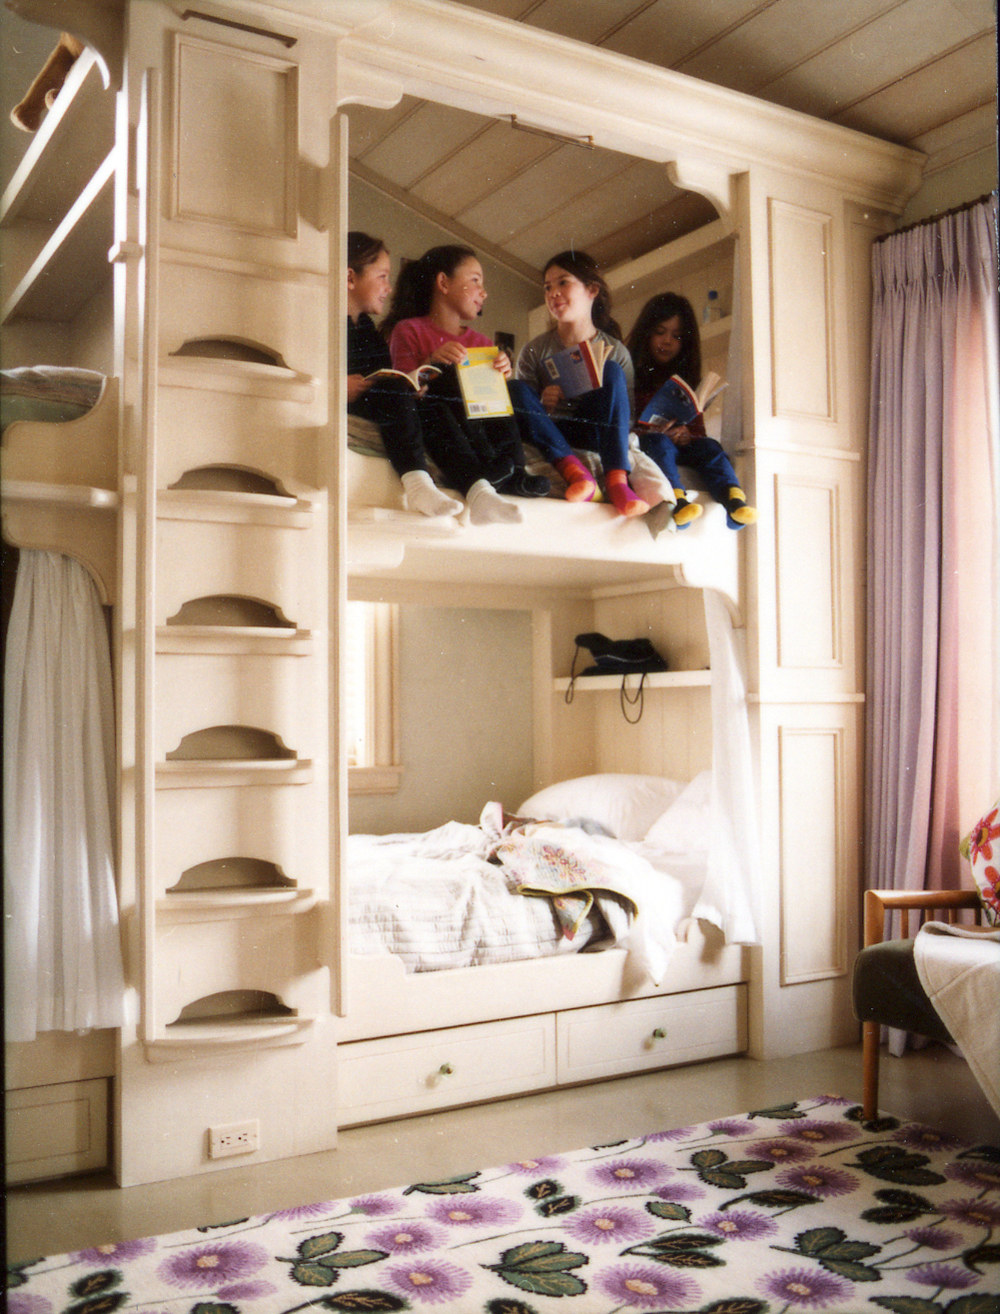 Snowmass_Village.Slope_Side_Lane.Ski_House.Robert_Orr_&_Associates.Architecture.Landscape_Architecture.New_Urbanism.Lebovitz_House.Bunk_Room_Girls.jpg